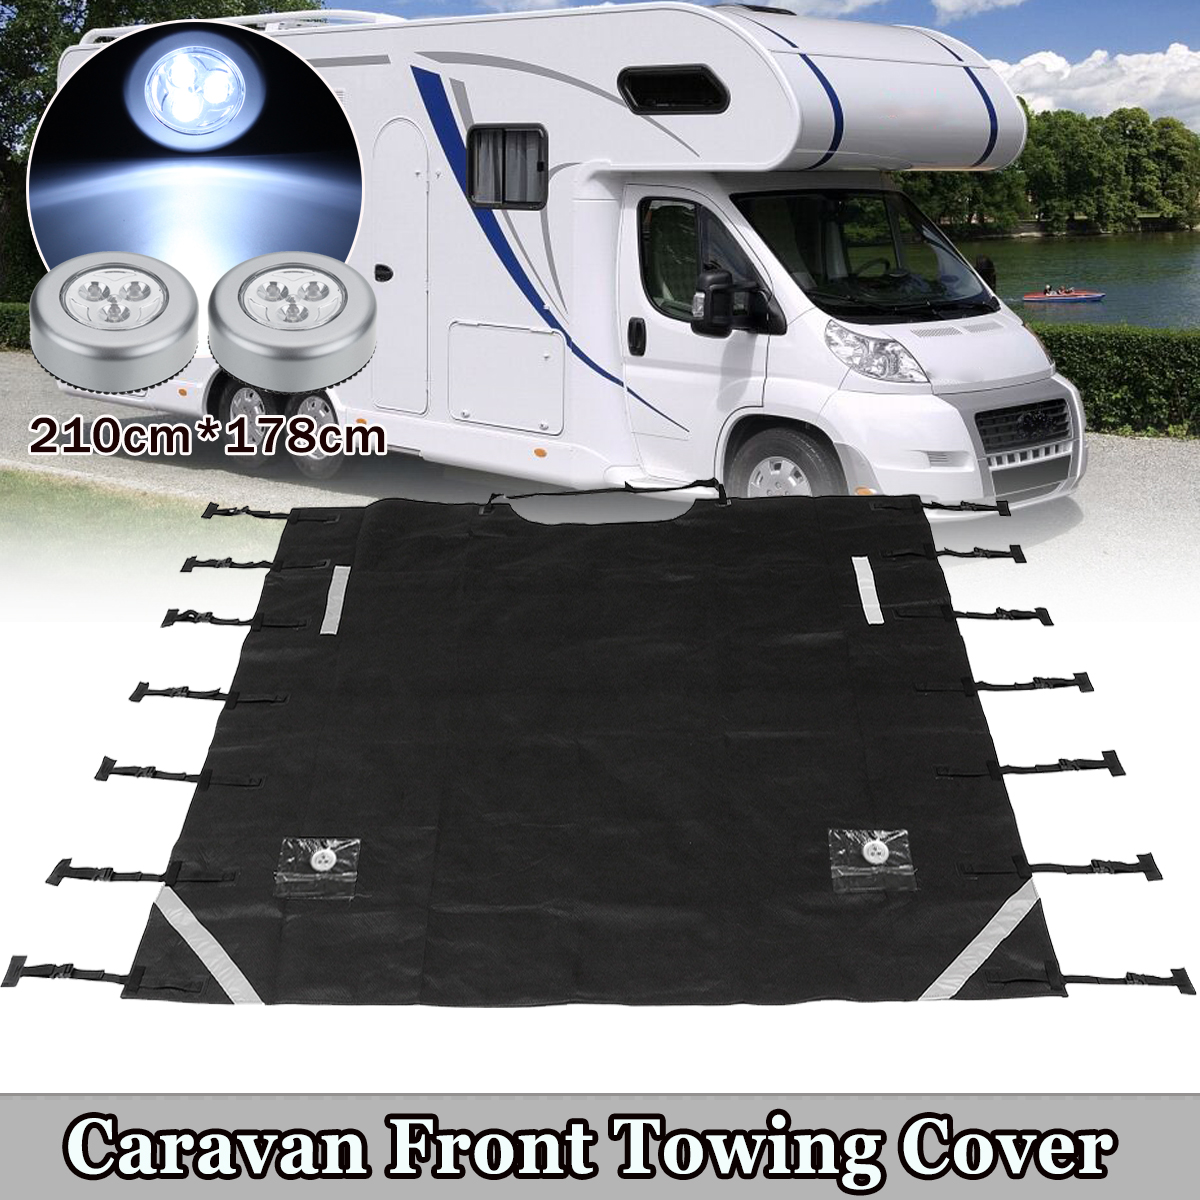 Universal Black Caravan Front Towing Cover Protector For RV Motorhome With LED Lights